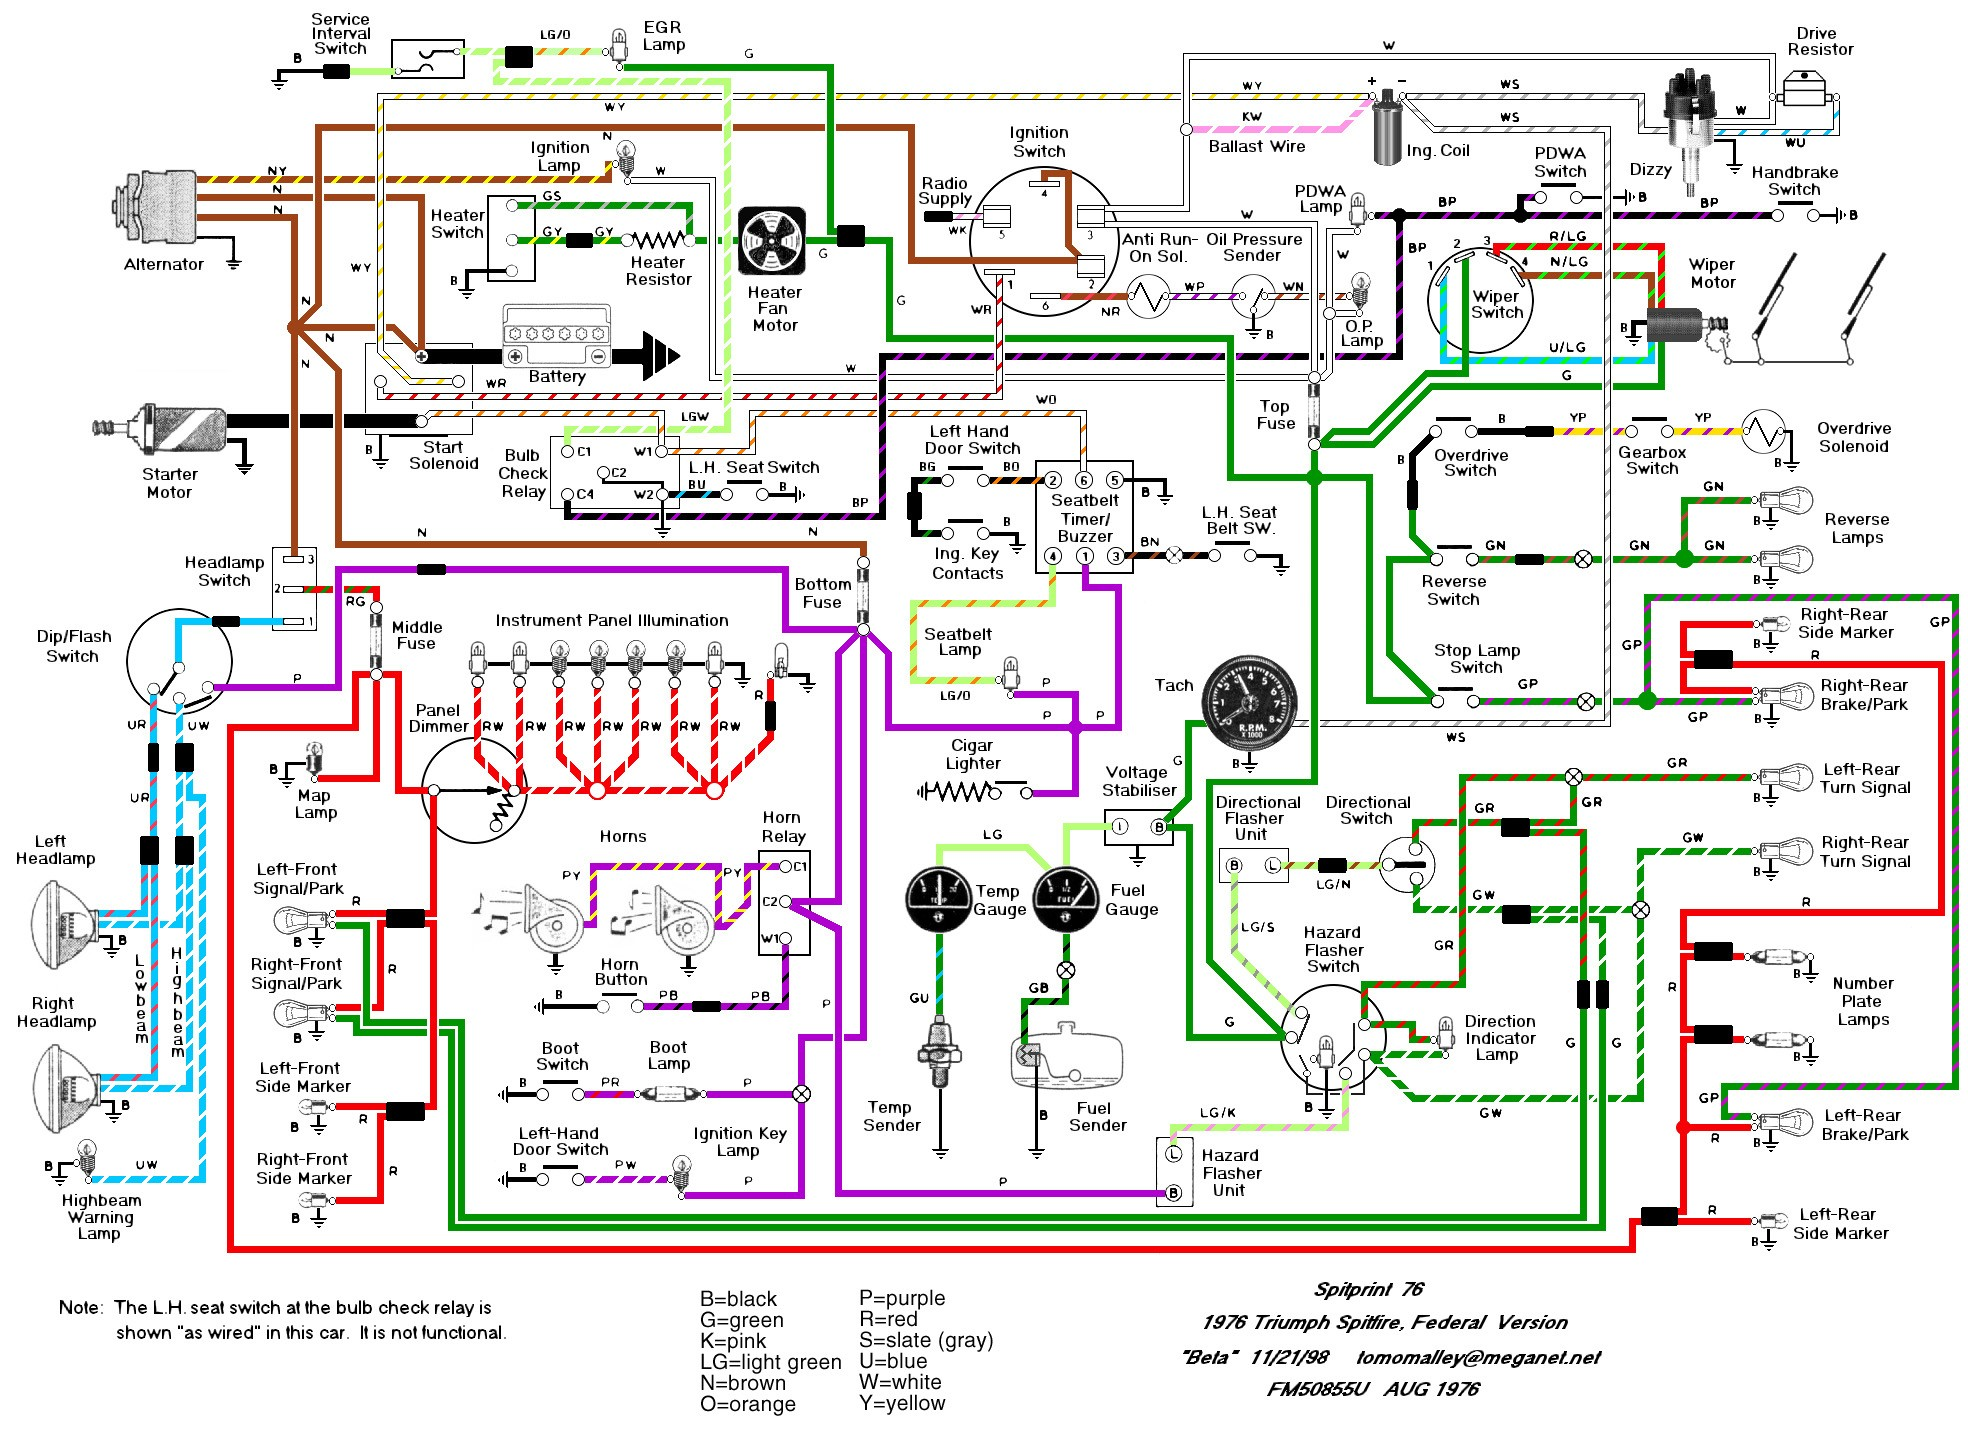 Boss V Plow Wiring Diagram Ford Solutions 2000 F650 Ke Light Schematic Wire Center